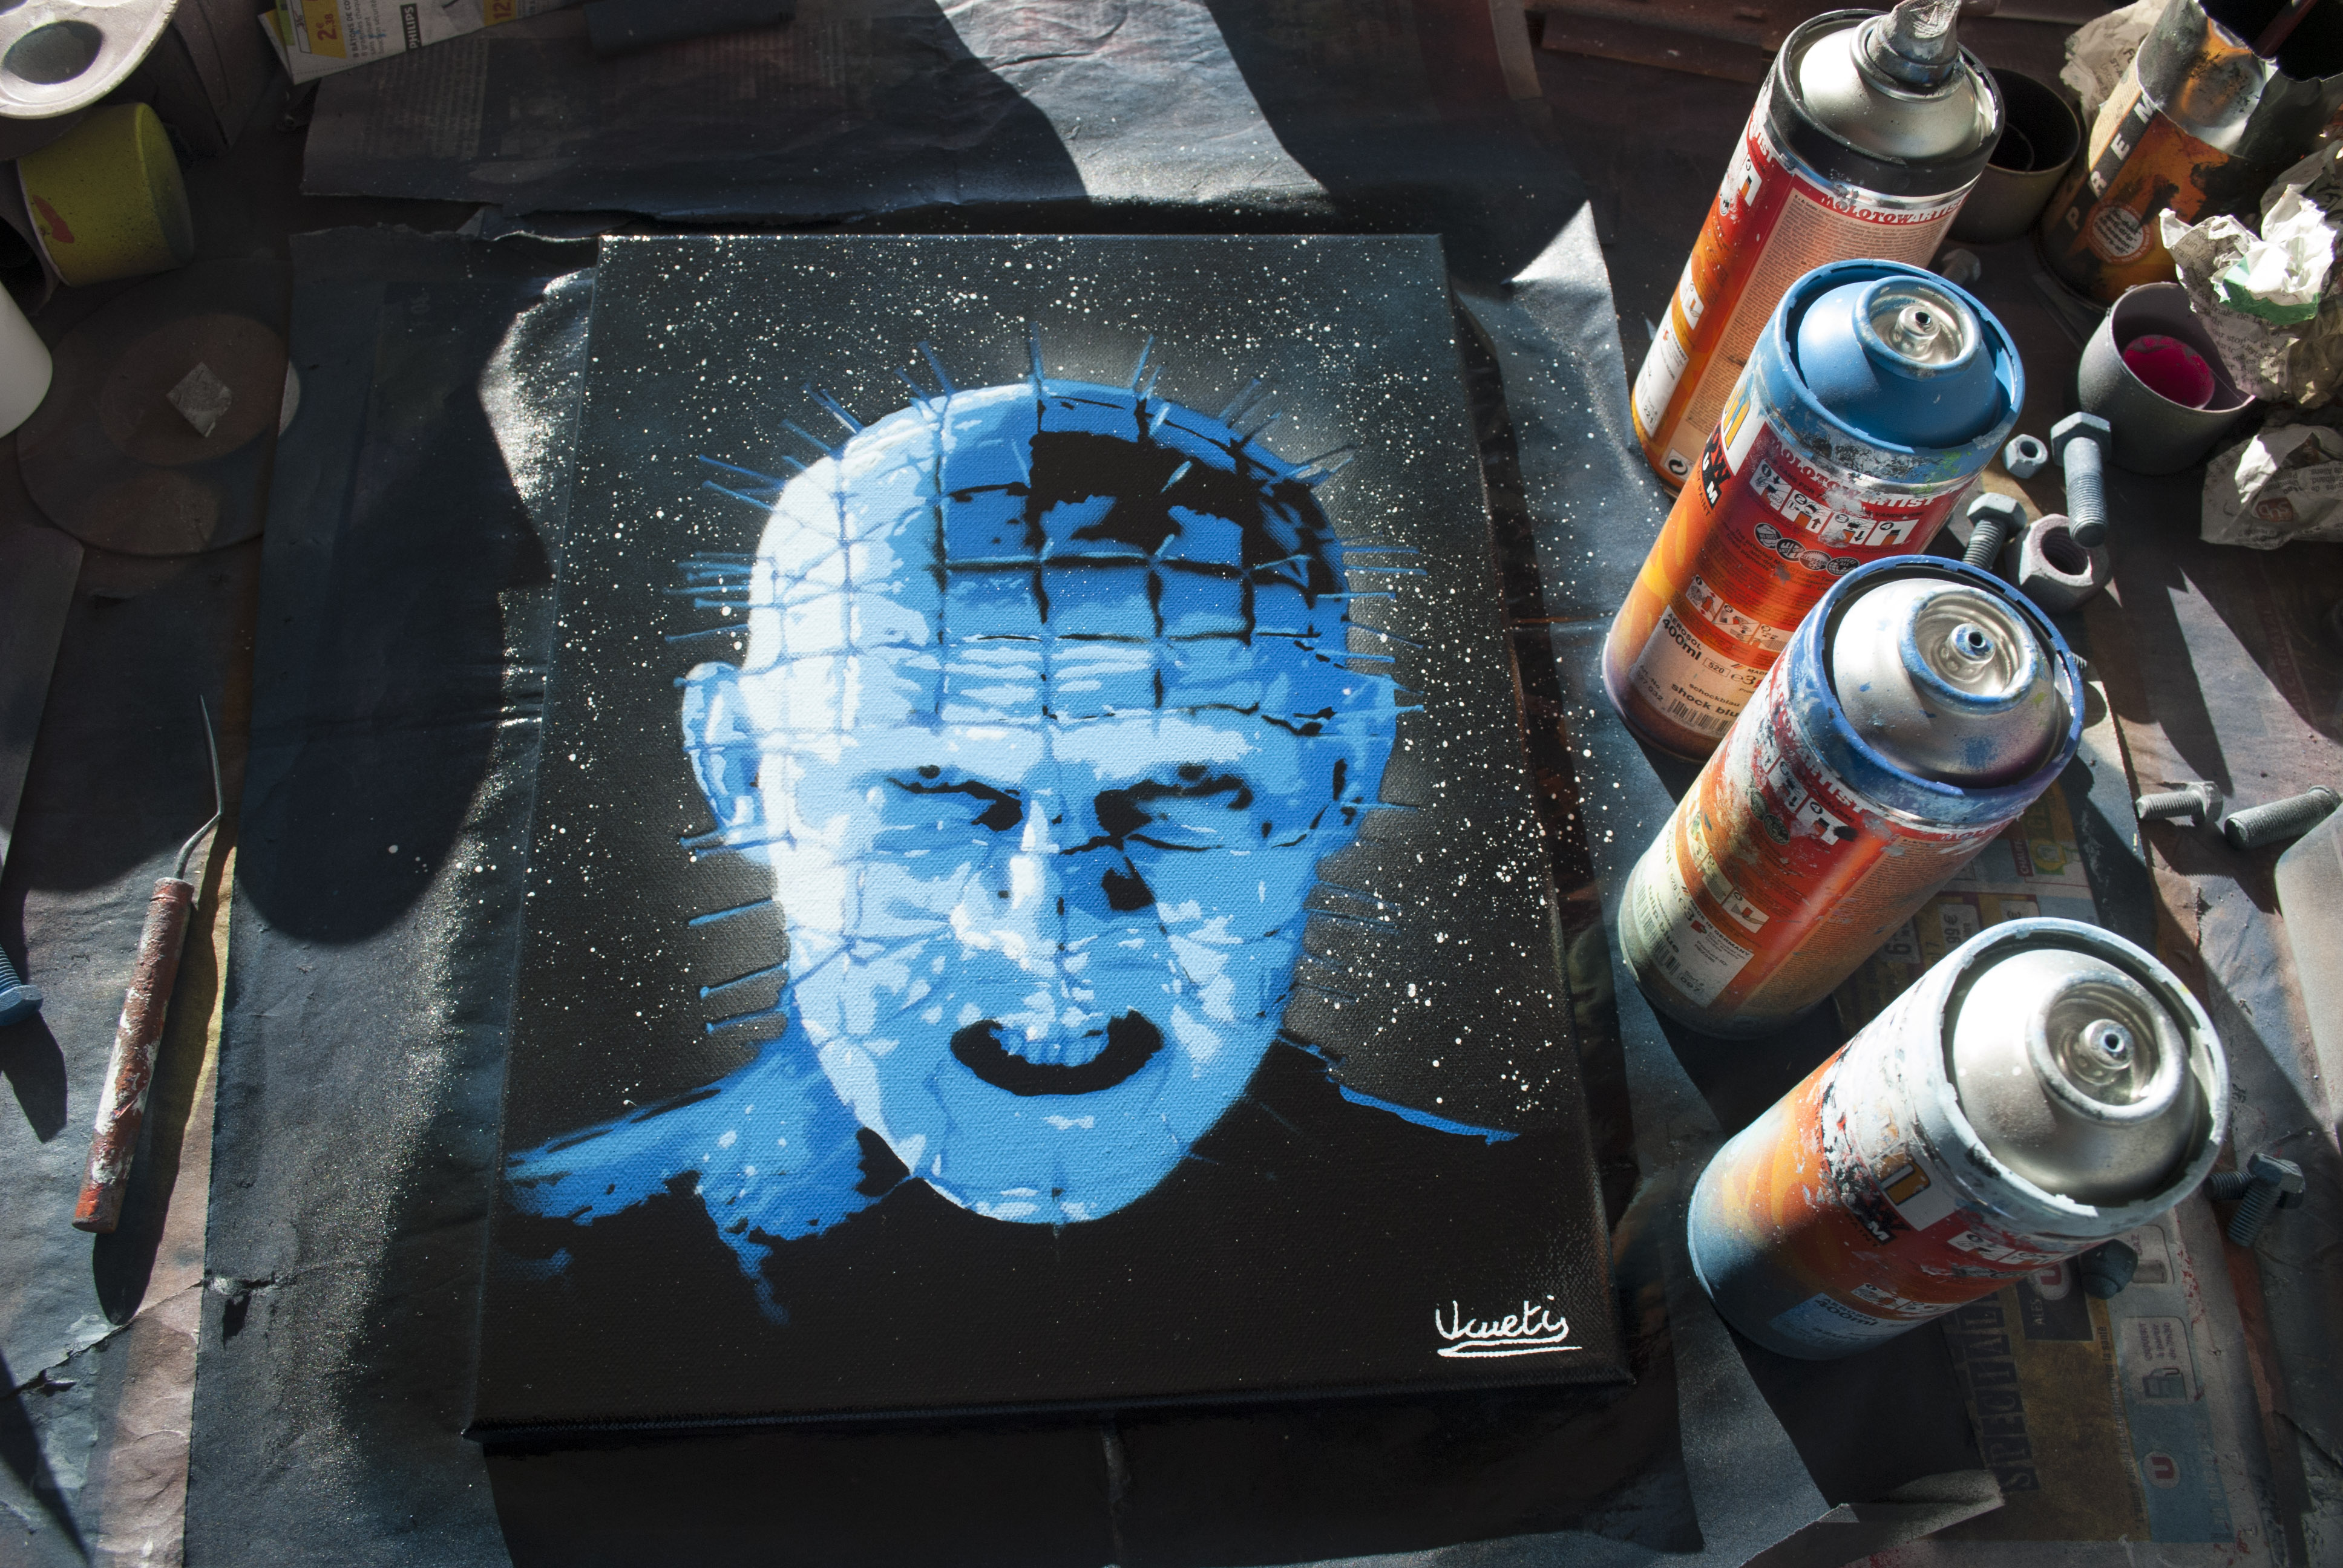 Hellraiser spray paint art by Ucuetis